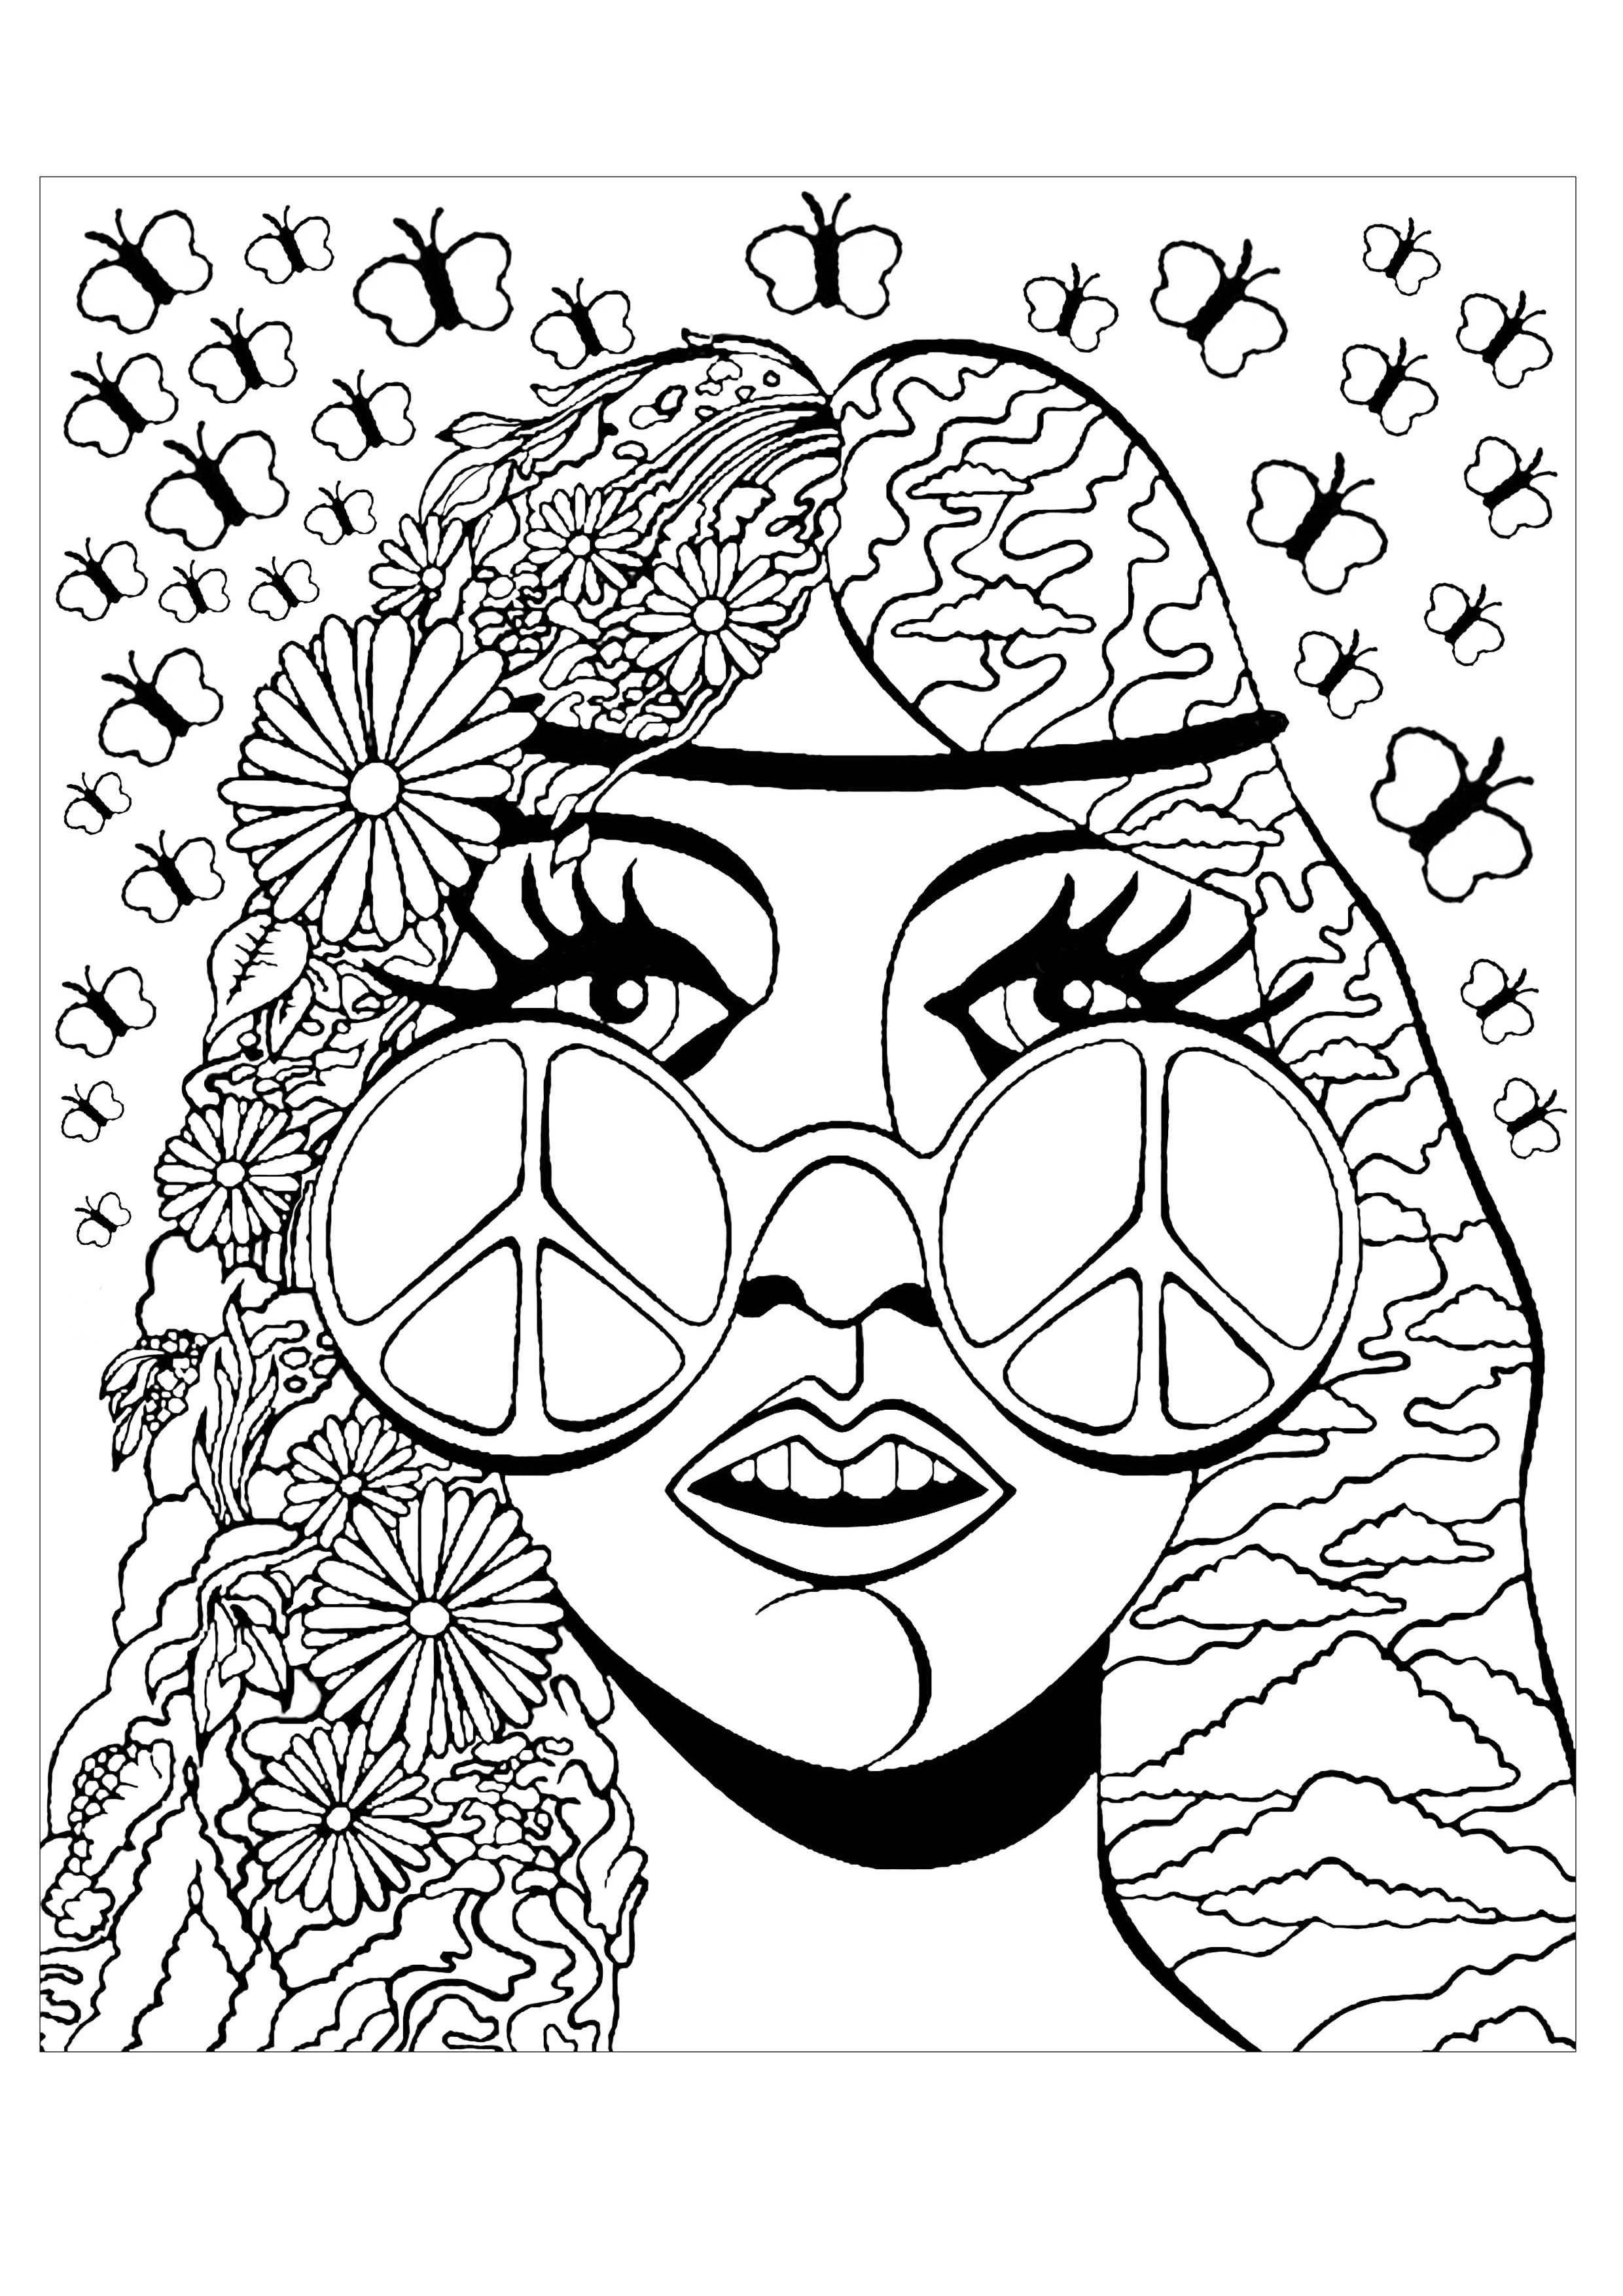 trippy coloring sheets psychedelic coloring pages to download and print for free trippy sheets coloring